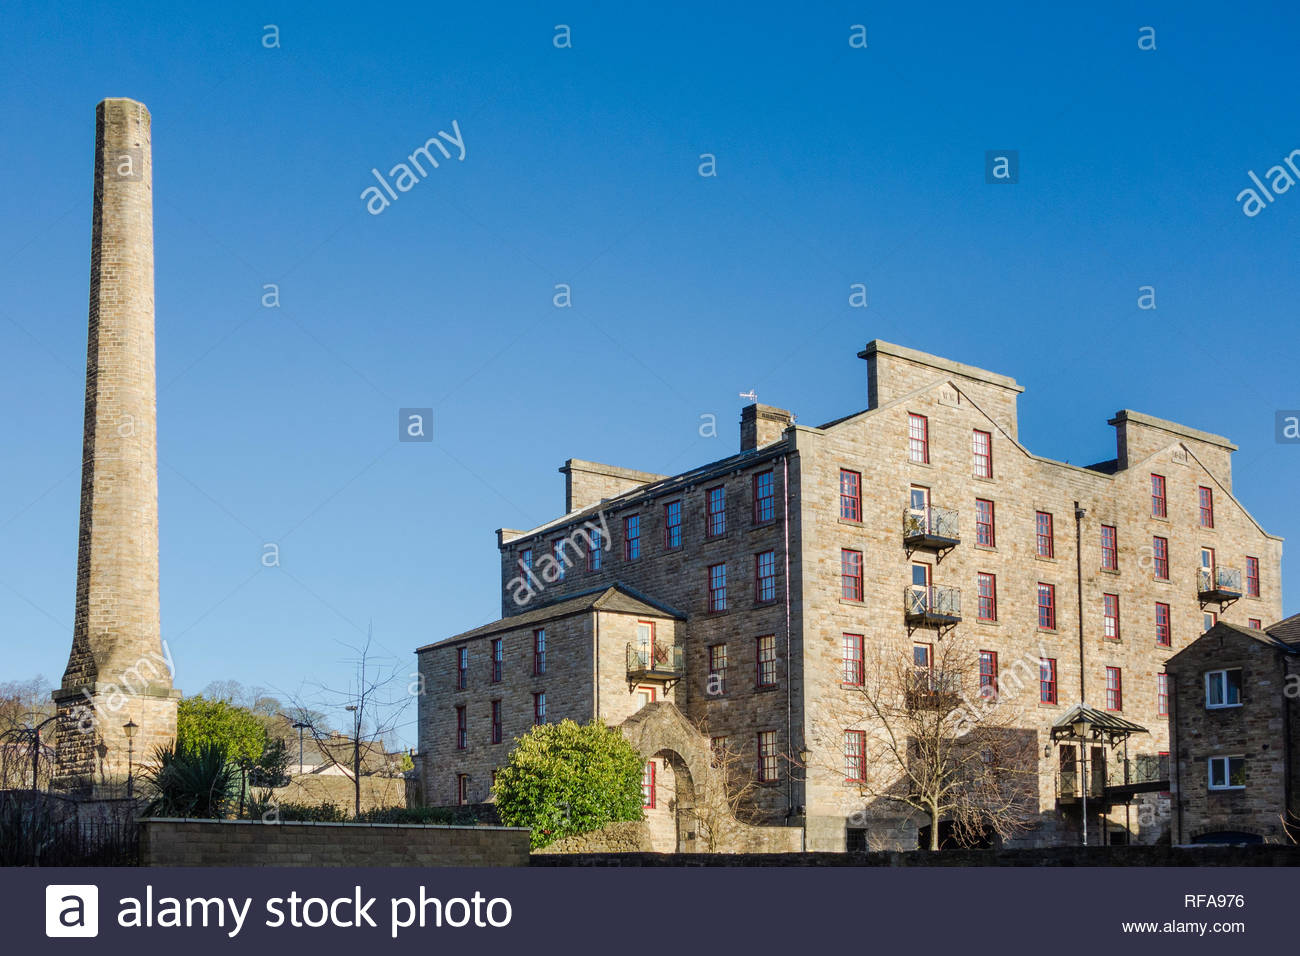 Industrial heritage and history in Skipton, North Yorkshire, England, UK with a brick chimney and a converted mill - Stock Image